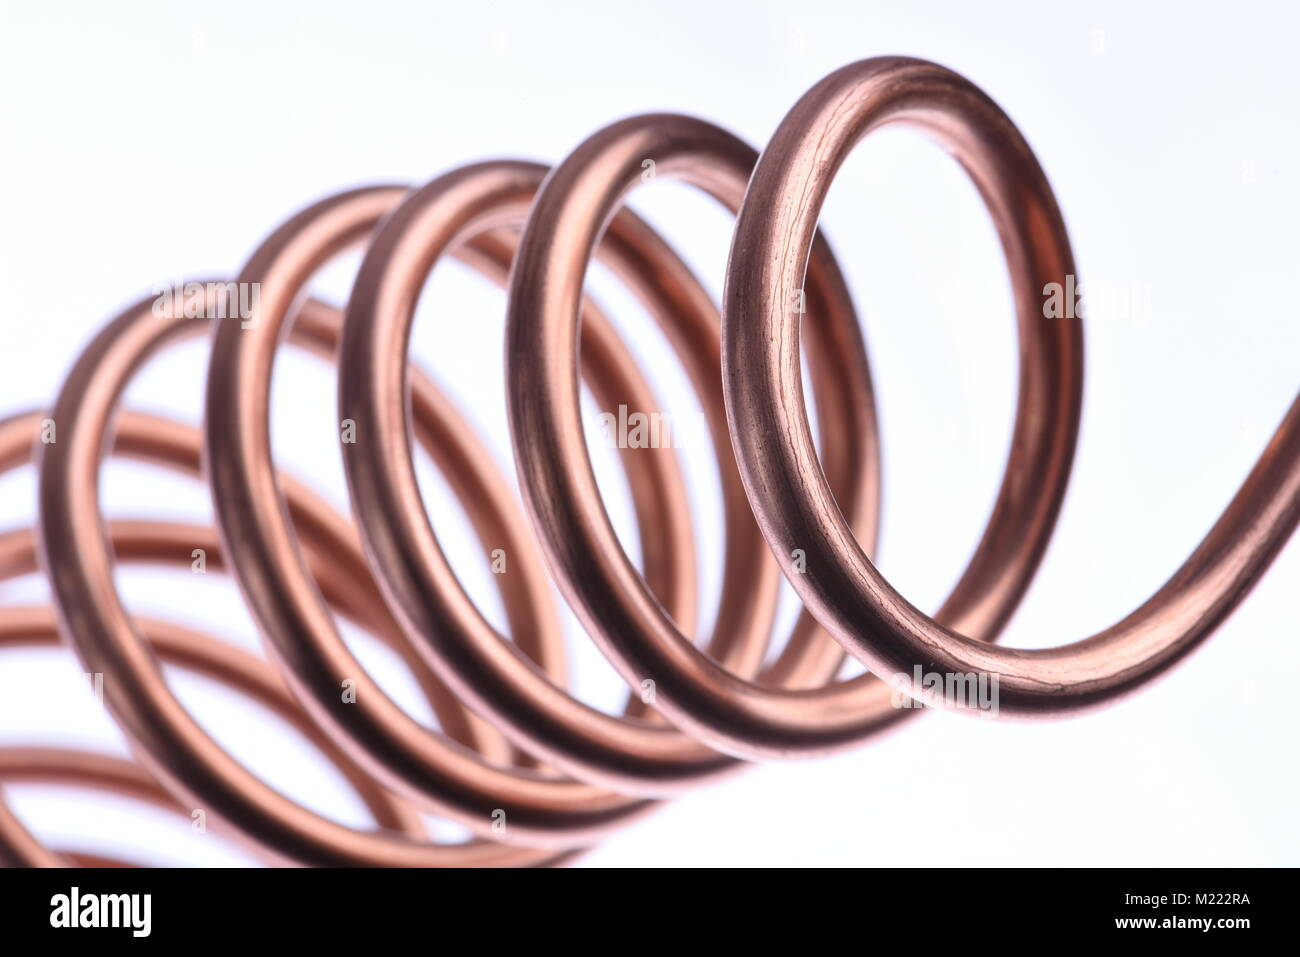 Copper wire close-up isolated on white background - Stock Image